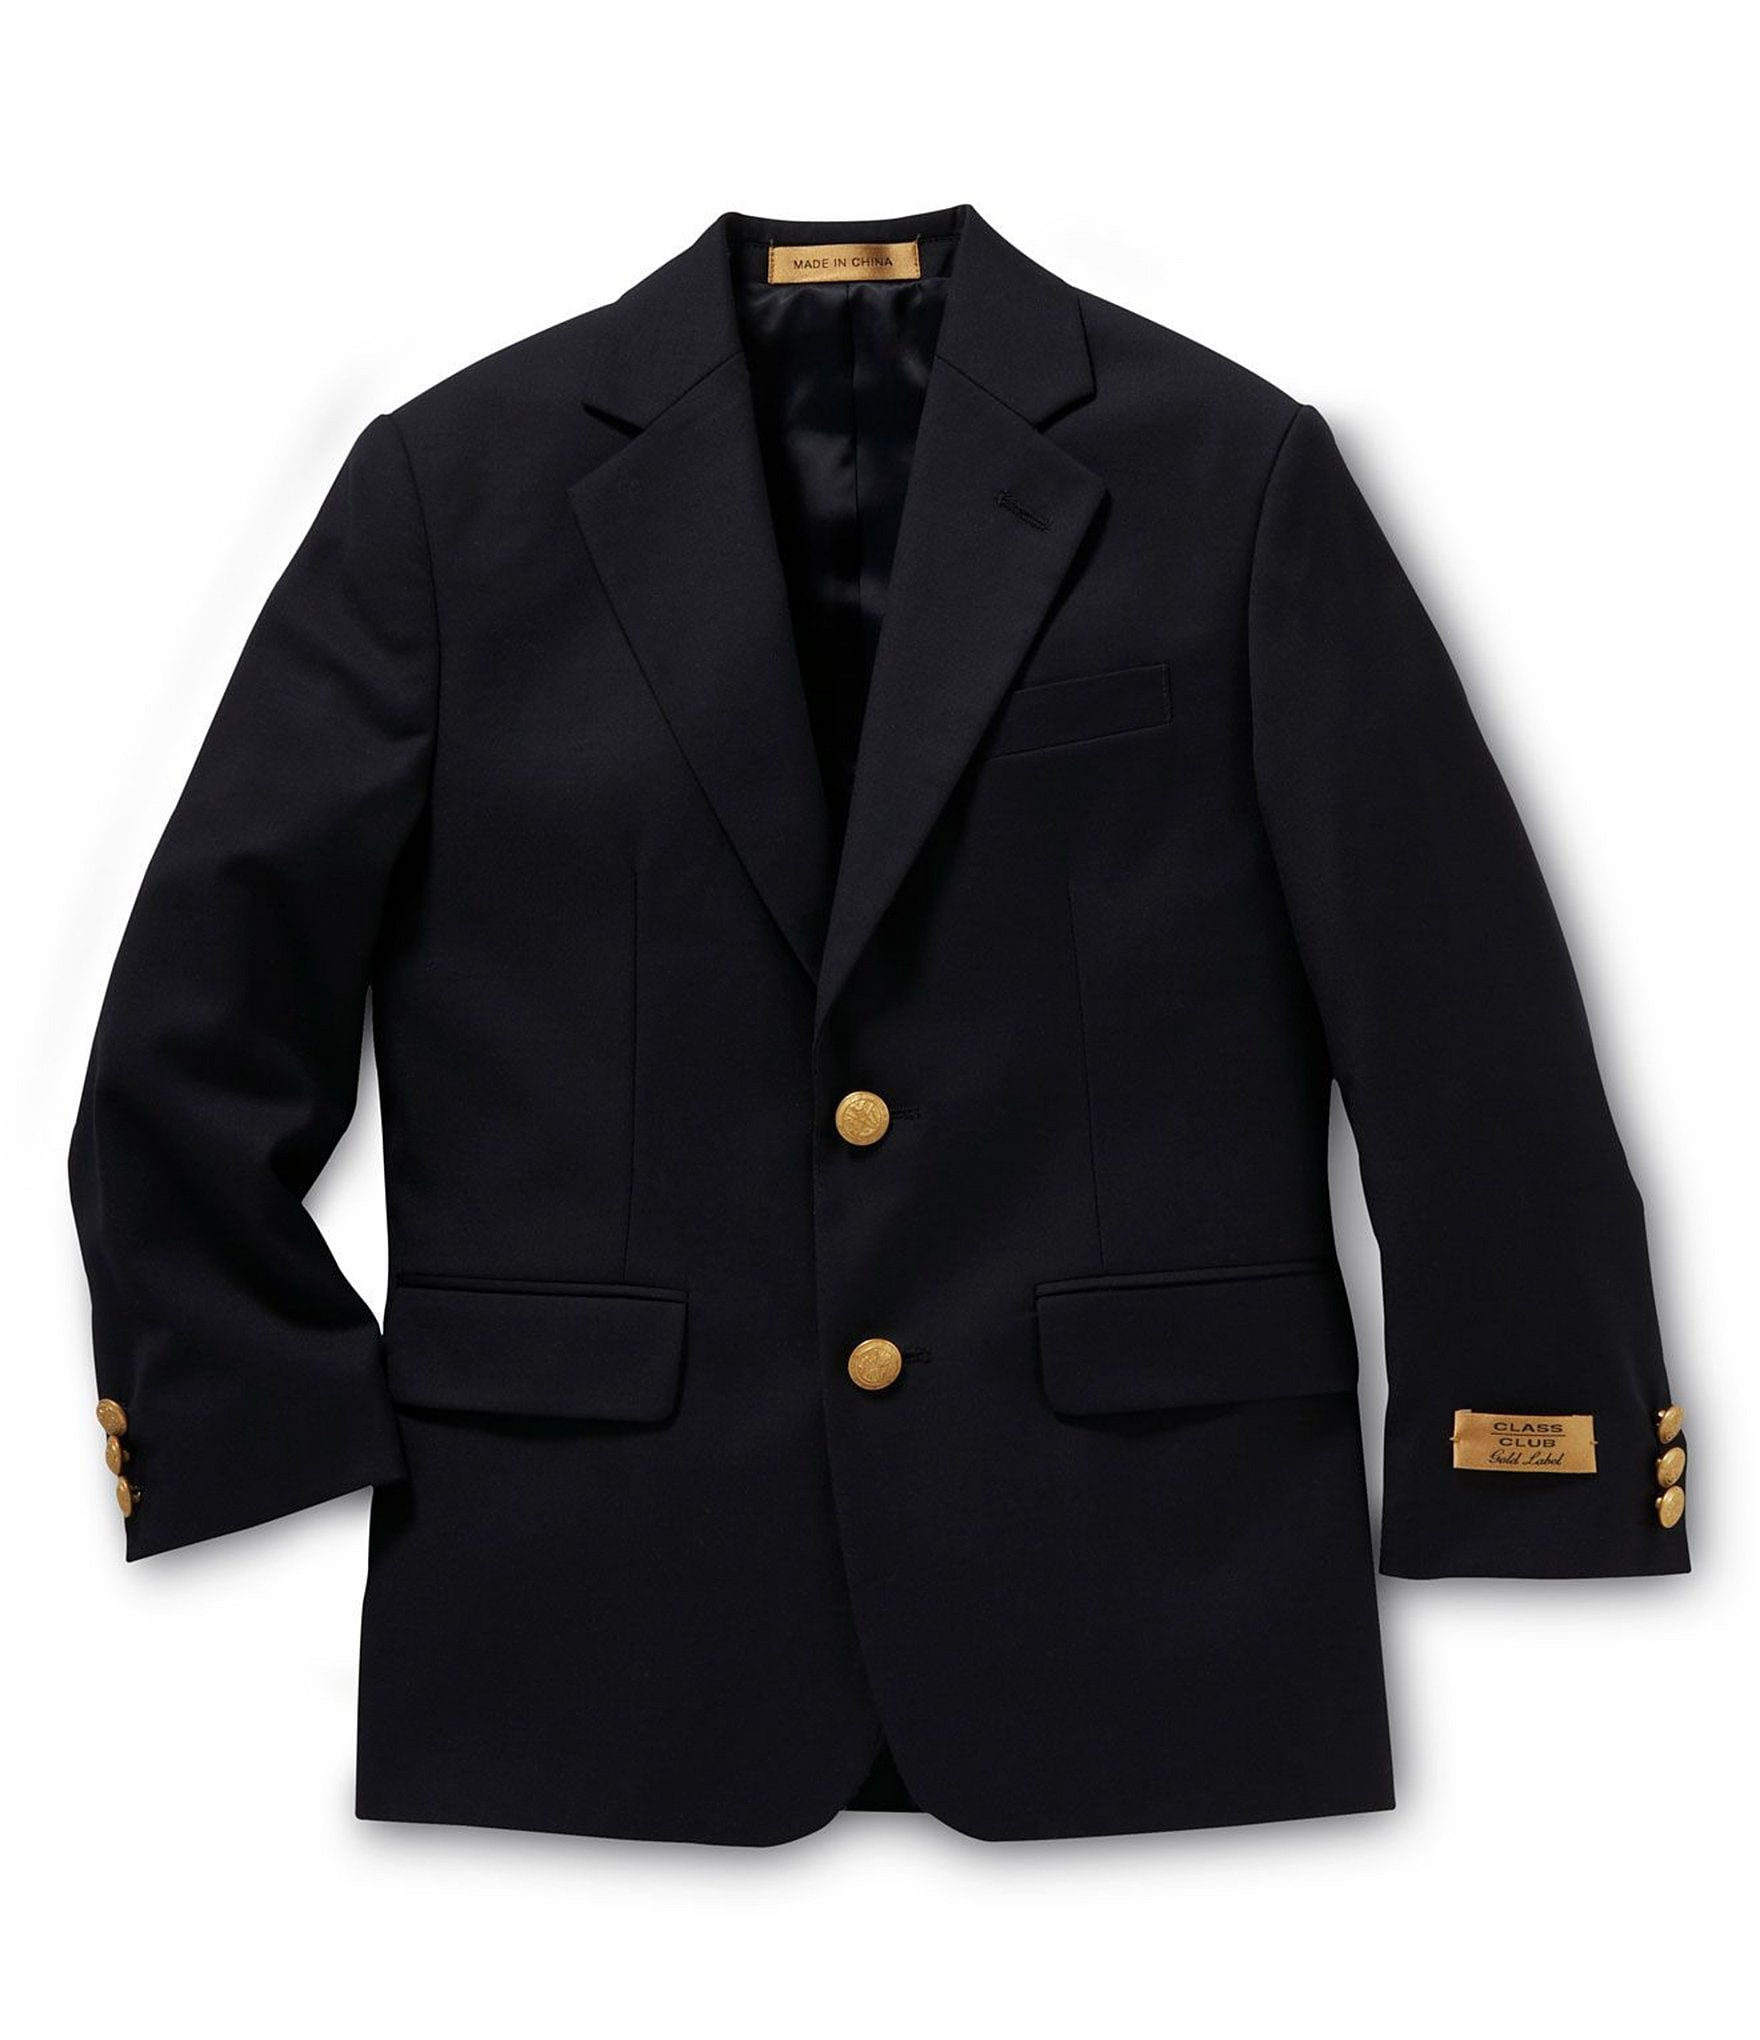 Mens Navy Blazer. Look sharp for the office or an evening out in a men's navy blazer. The crisp look comes from more than just a notched lapel. The clean line extends down to the tailored fit of a two-button blazer. Bring three-buttons to the wrist for a refined cuff. Employ a sleek pocket at the chest and flap pocket at the side.